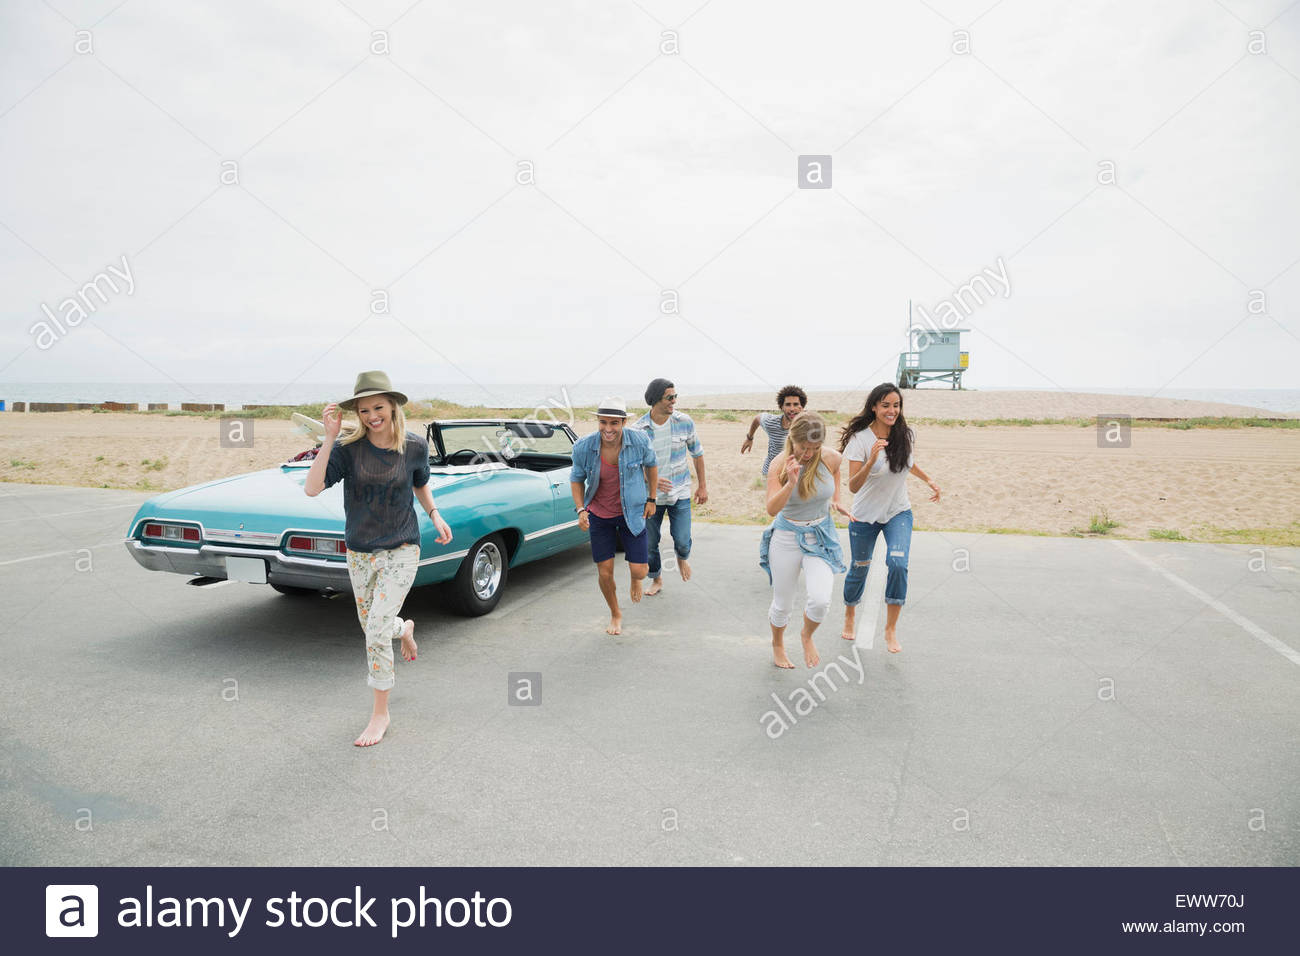 Friends running from beach in parking lot - Stock Image